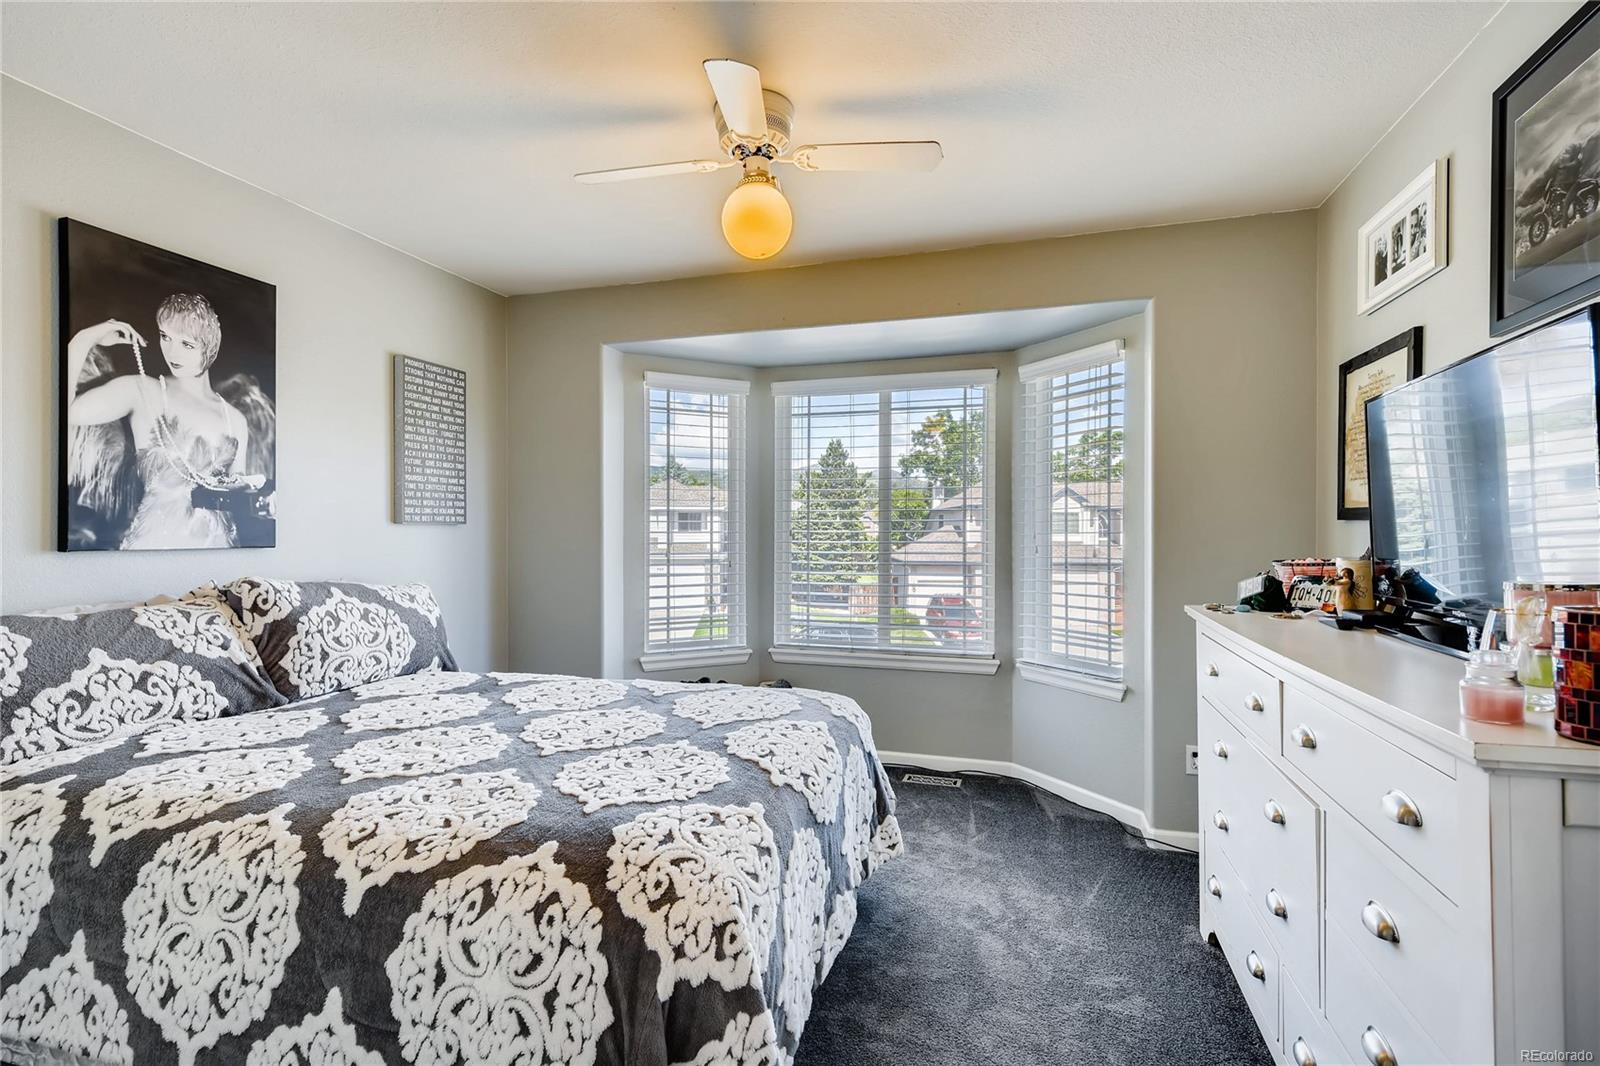 Bedroom #2 in the front of the home with a neat bay window.